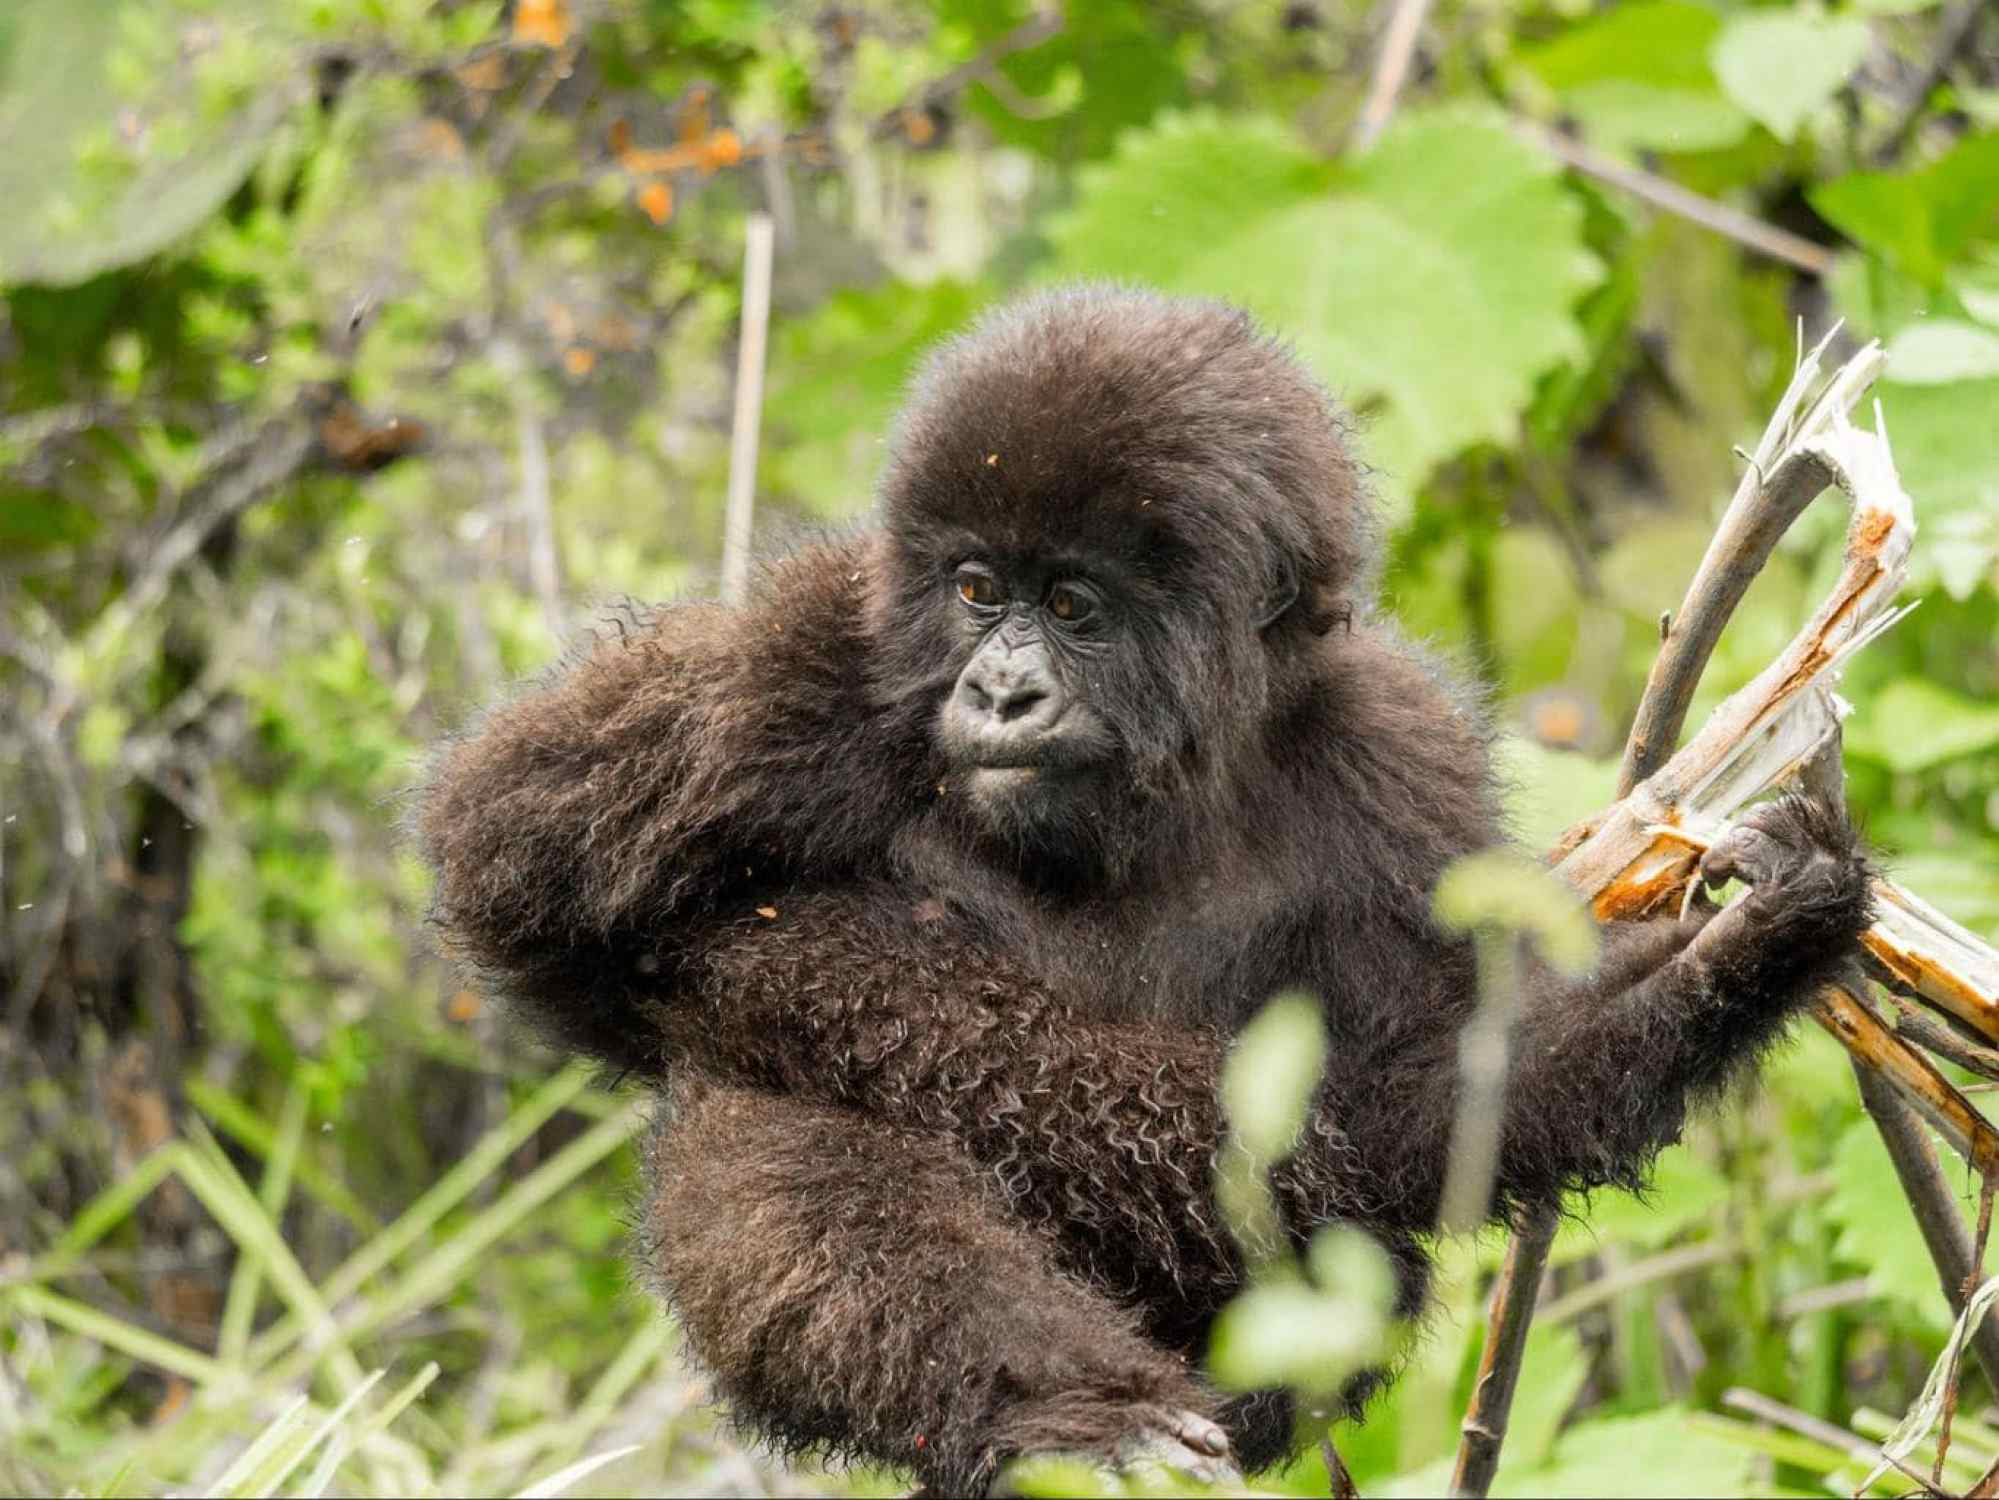 Baby gorilla having a snack